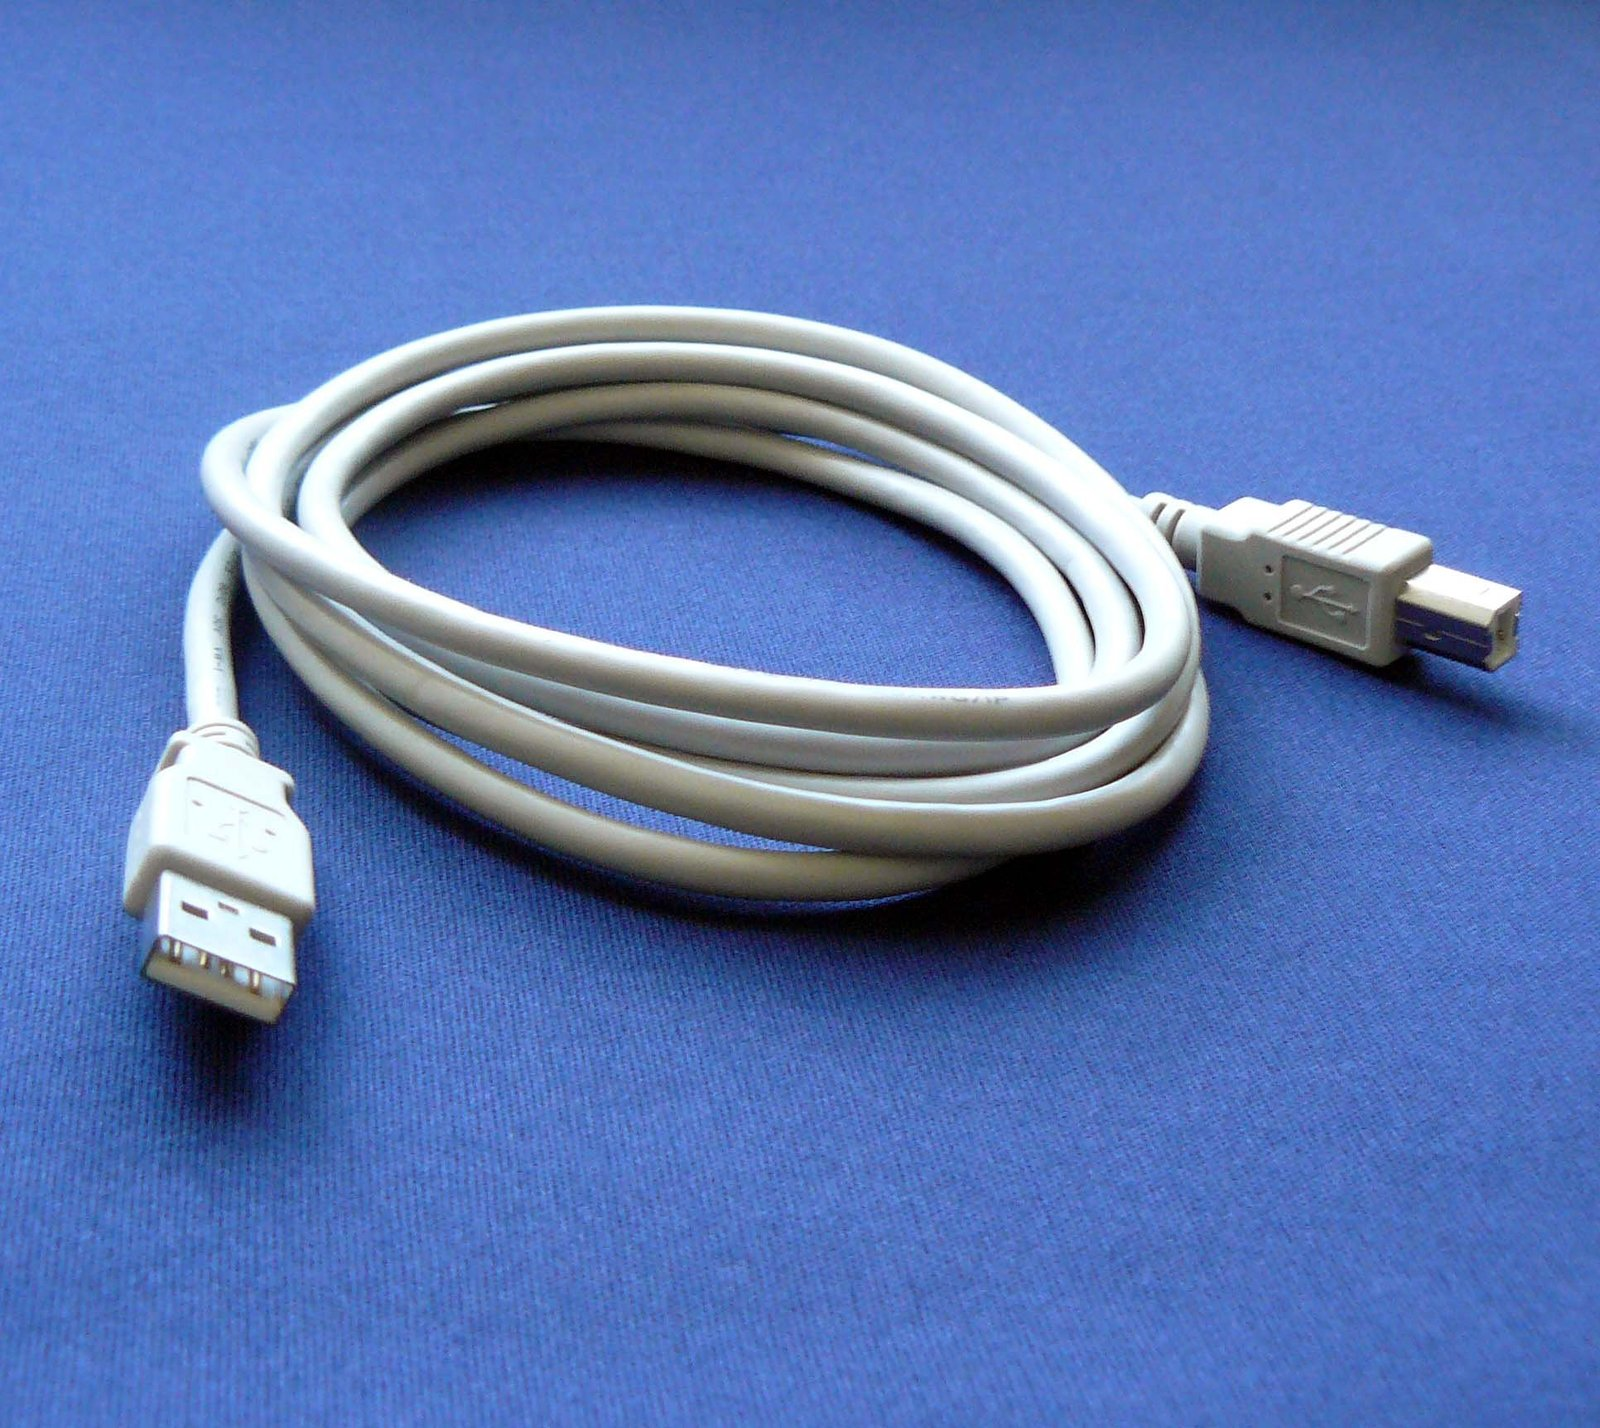 Primary image for Brother DCP-7065DN Printer Compatible USB 2.0 Cable Cord for PC, Notebook, Ma...